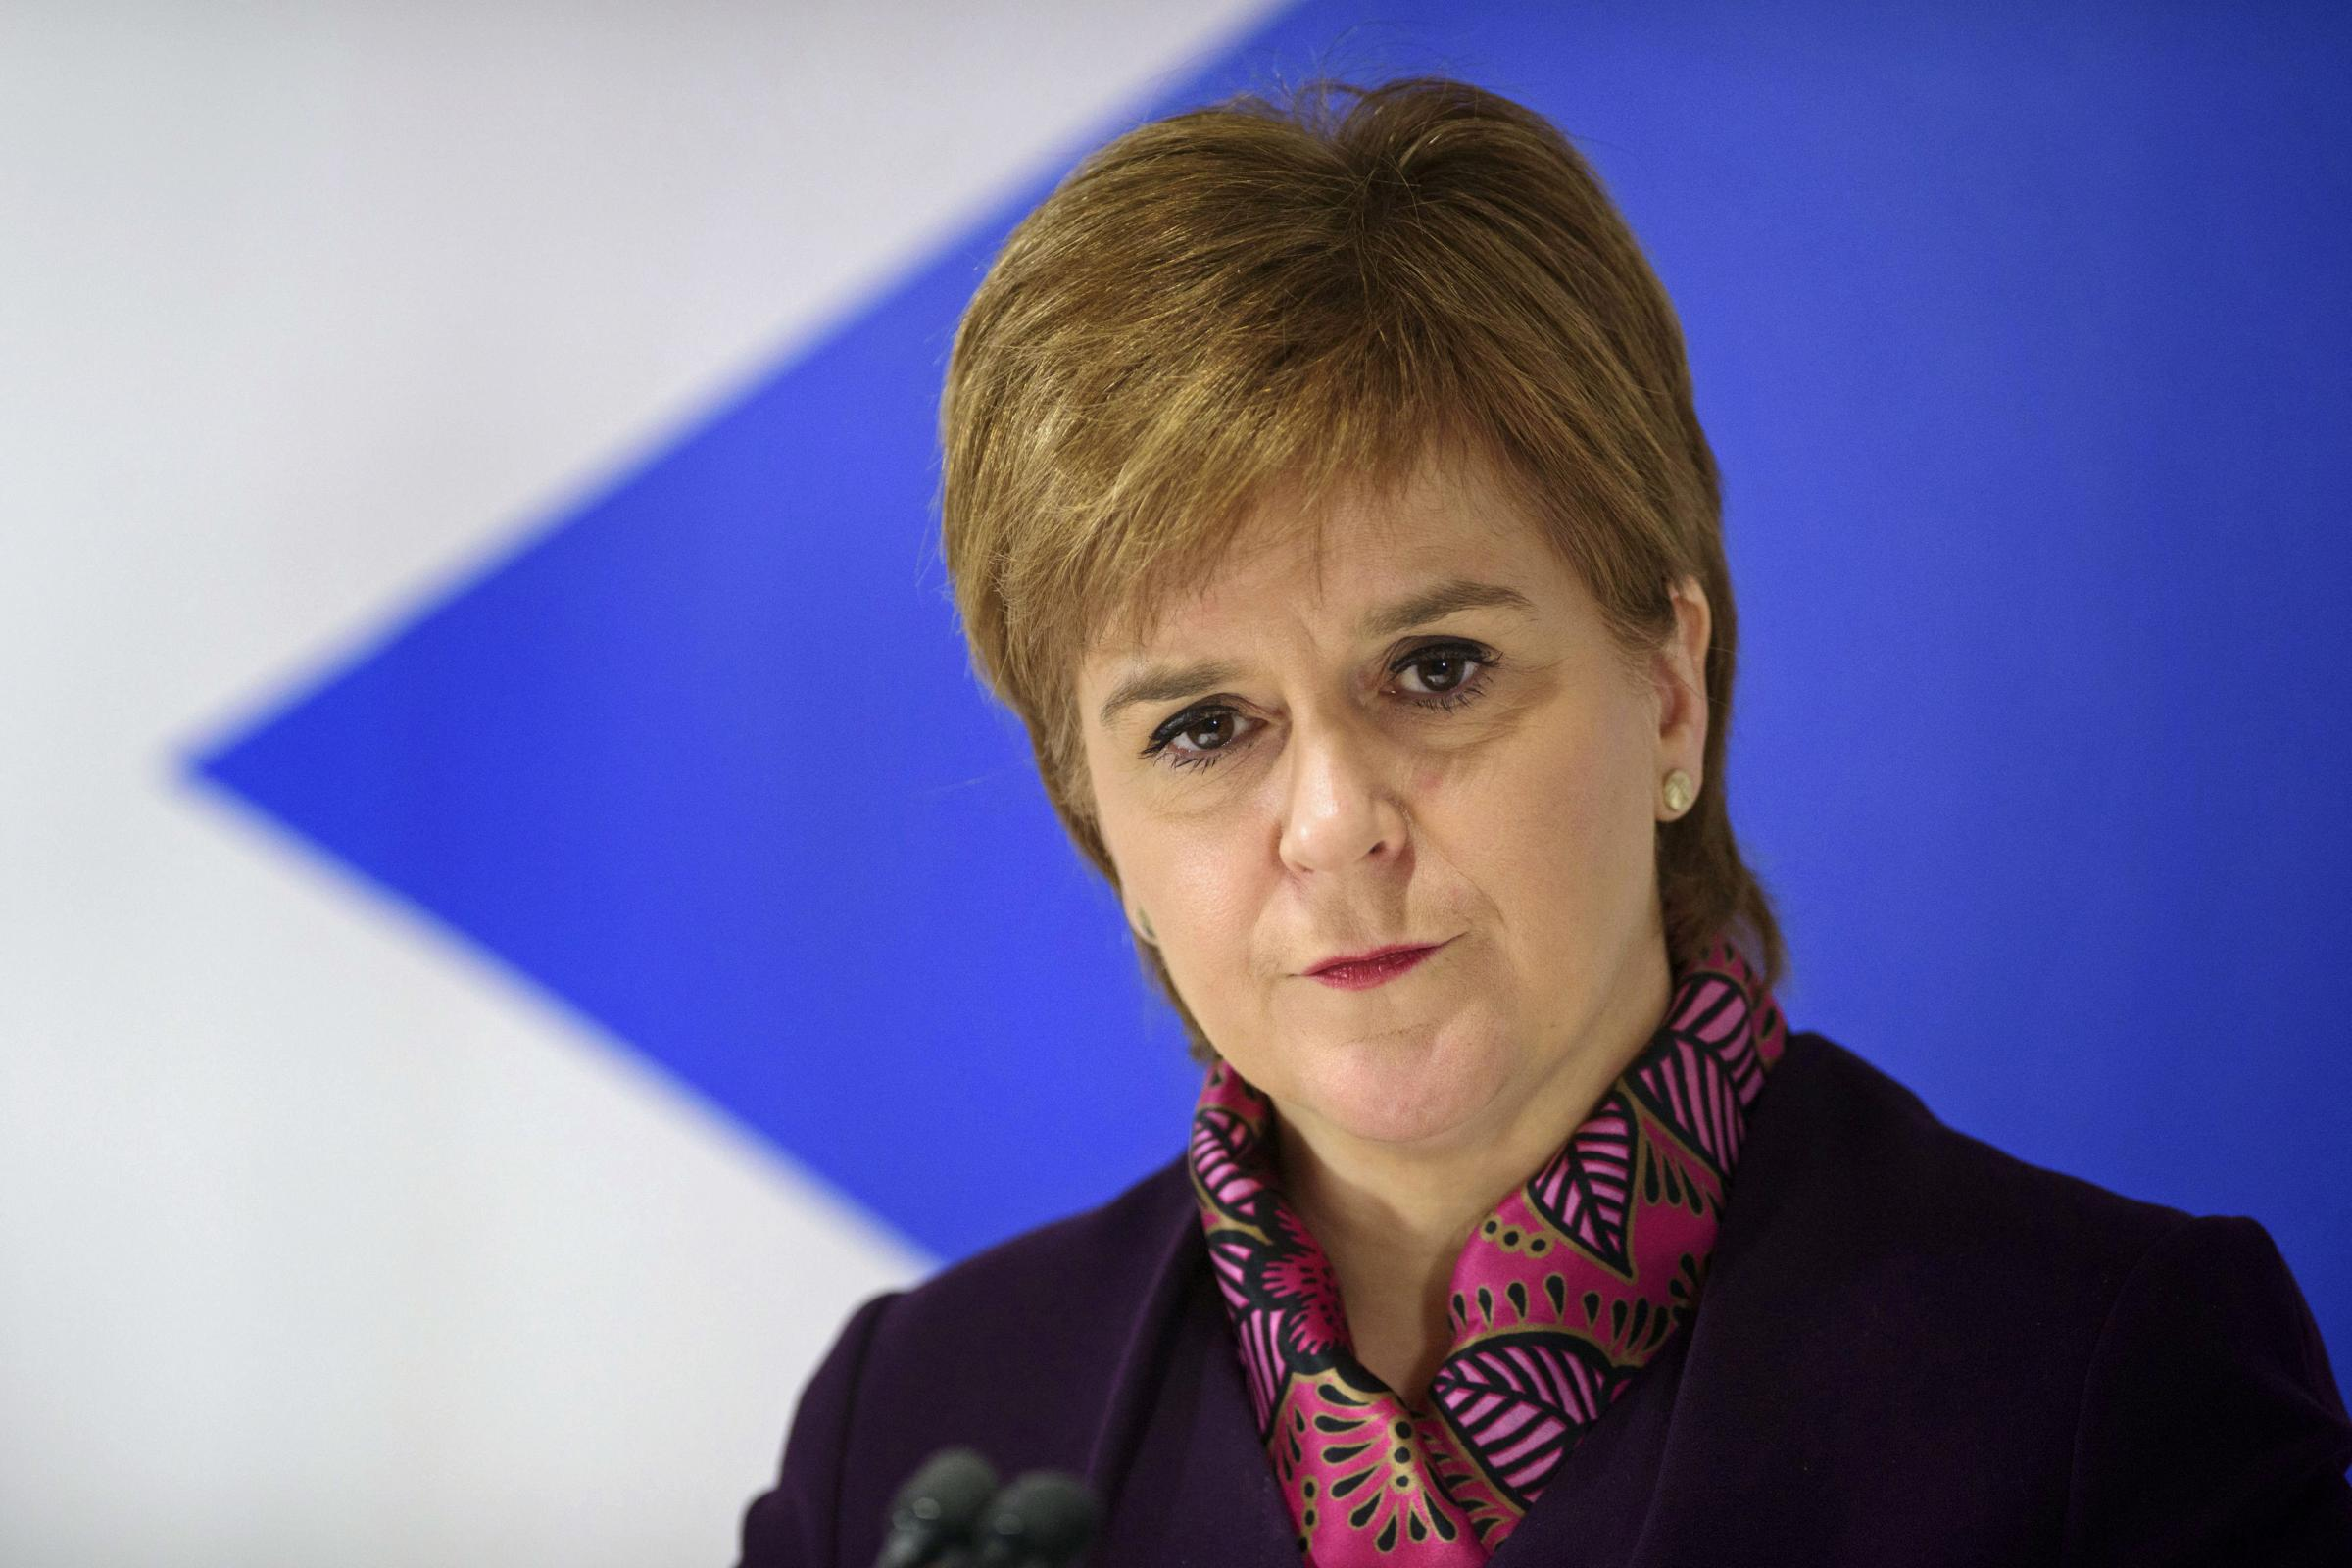 Scotland's First Minister Nicola Sturgeon is topping the poll